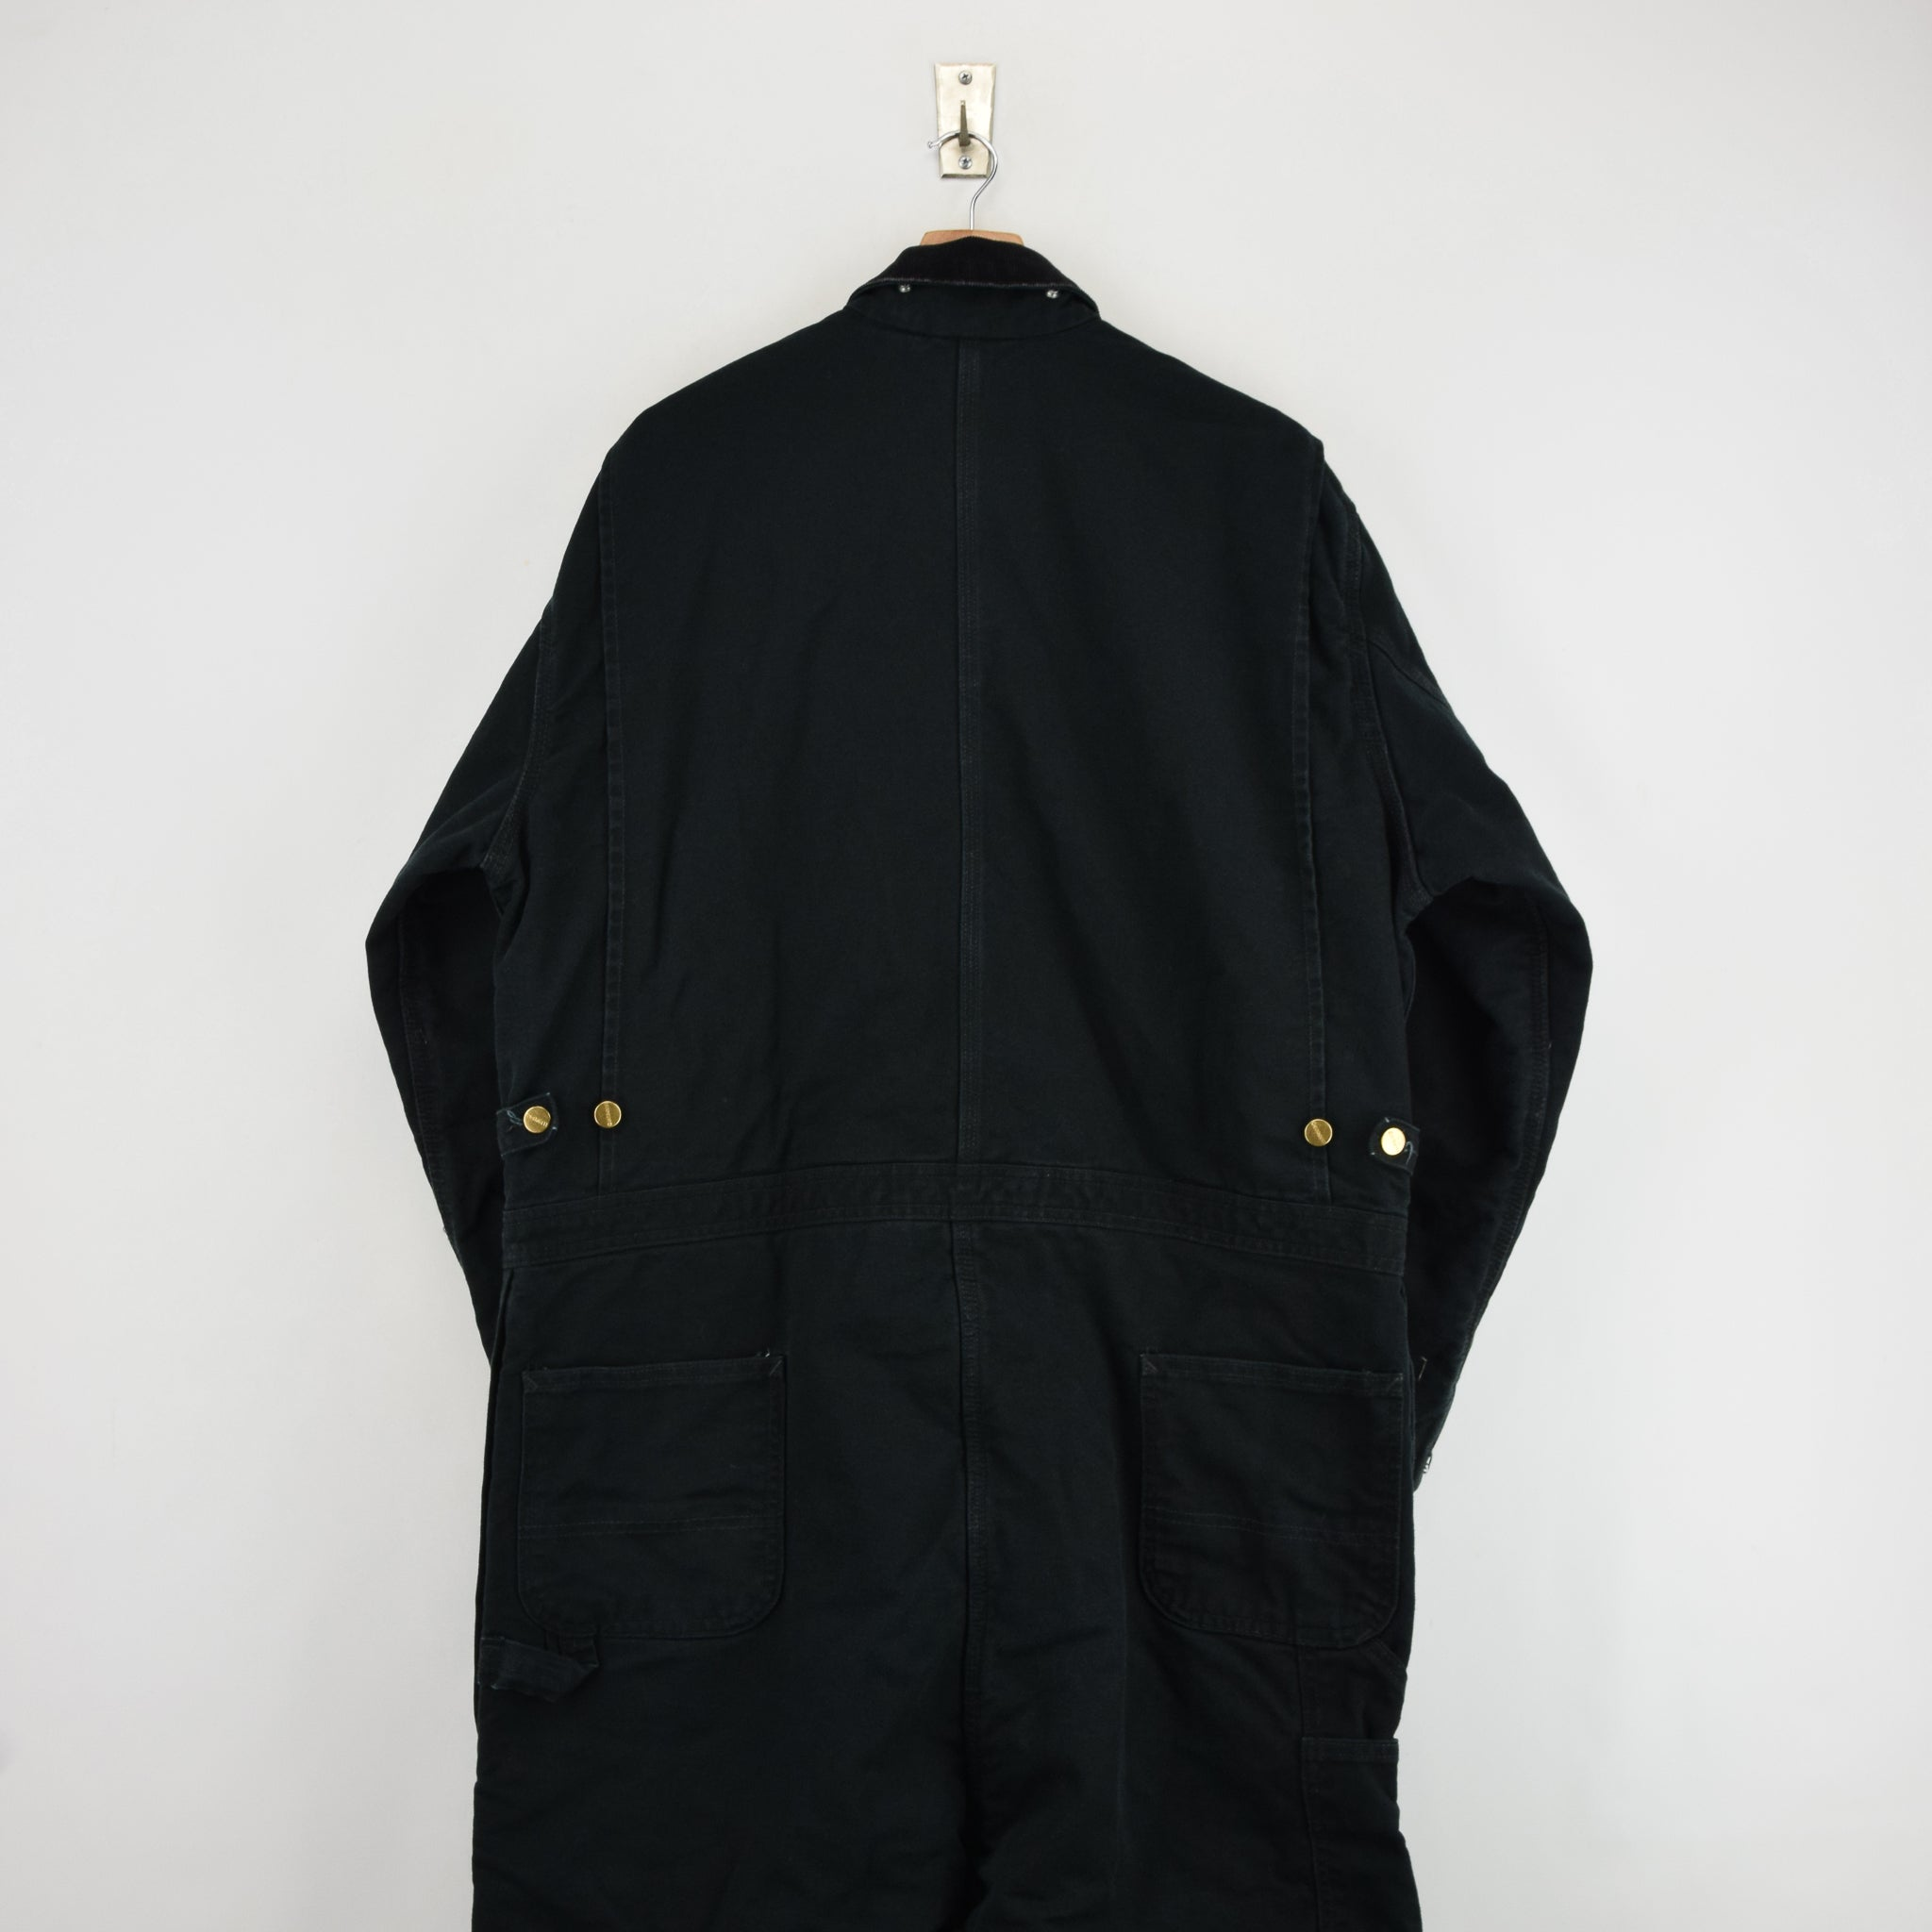 Vintage Carhartt Workwear Coverall Black Duck Canvas Boiler Suit 50 Tall 3XL back